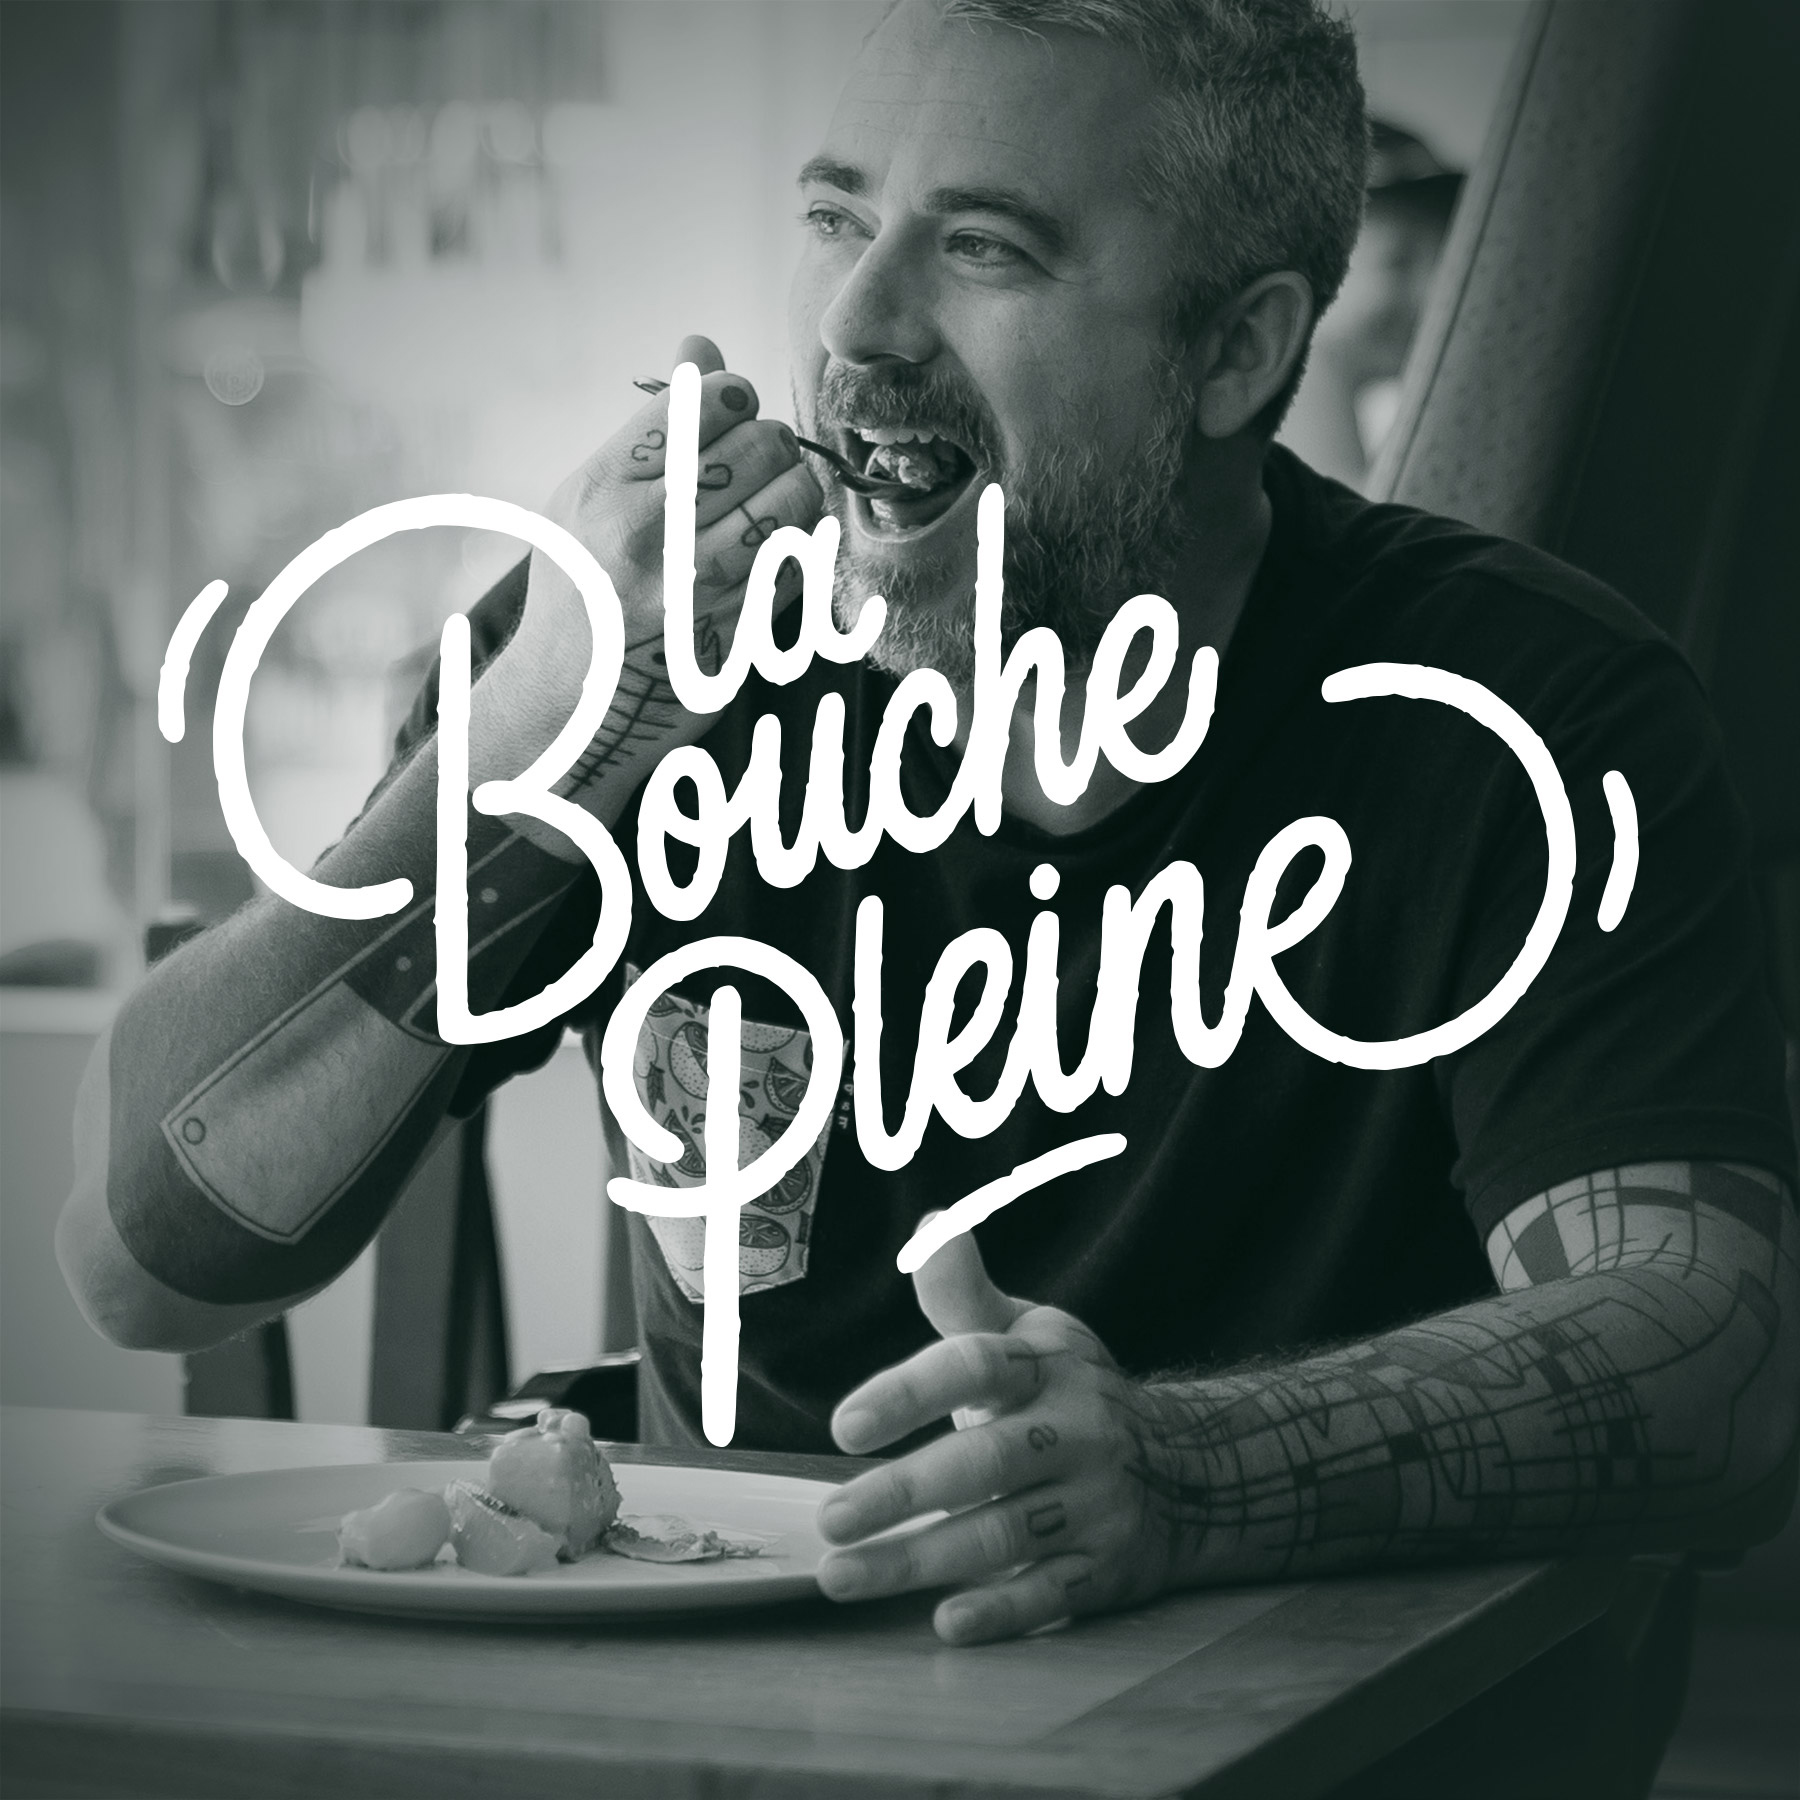 La bouche Pleine podcast logo by Bruno Florin